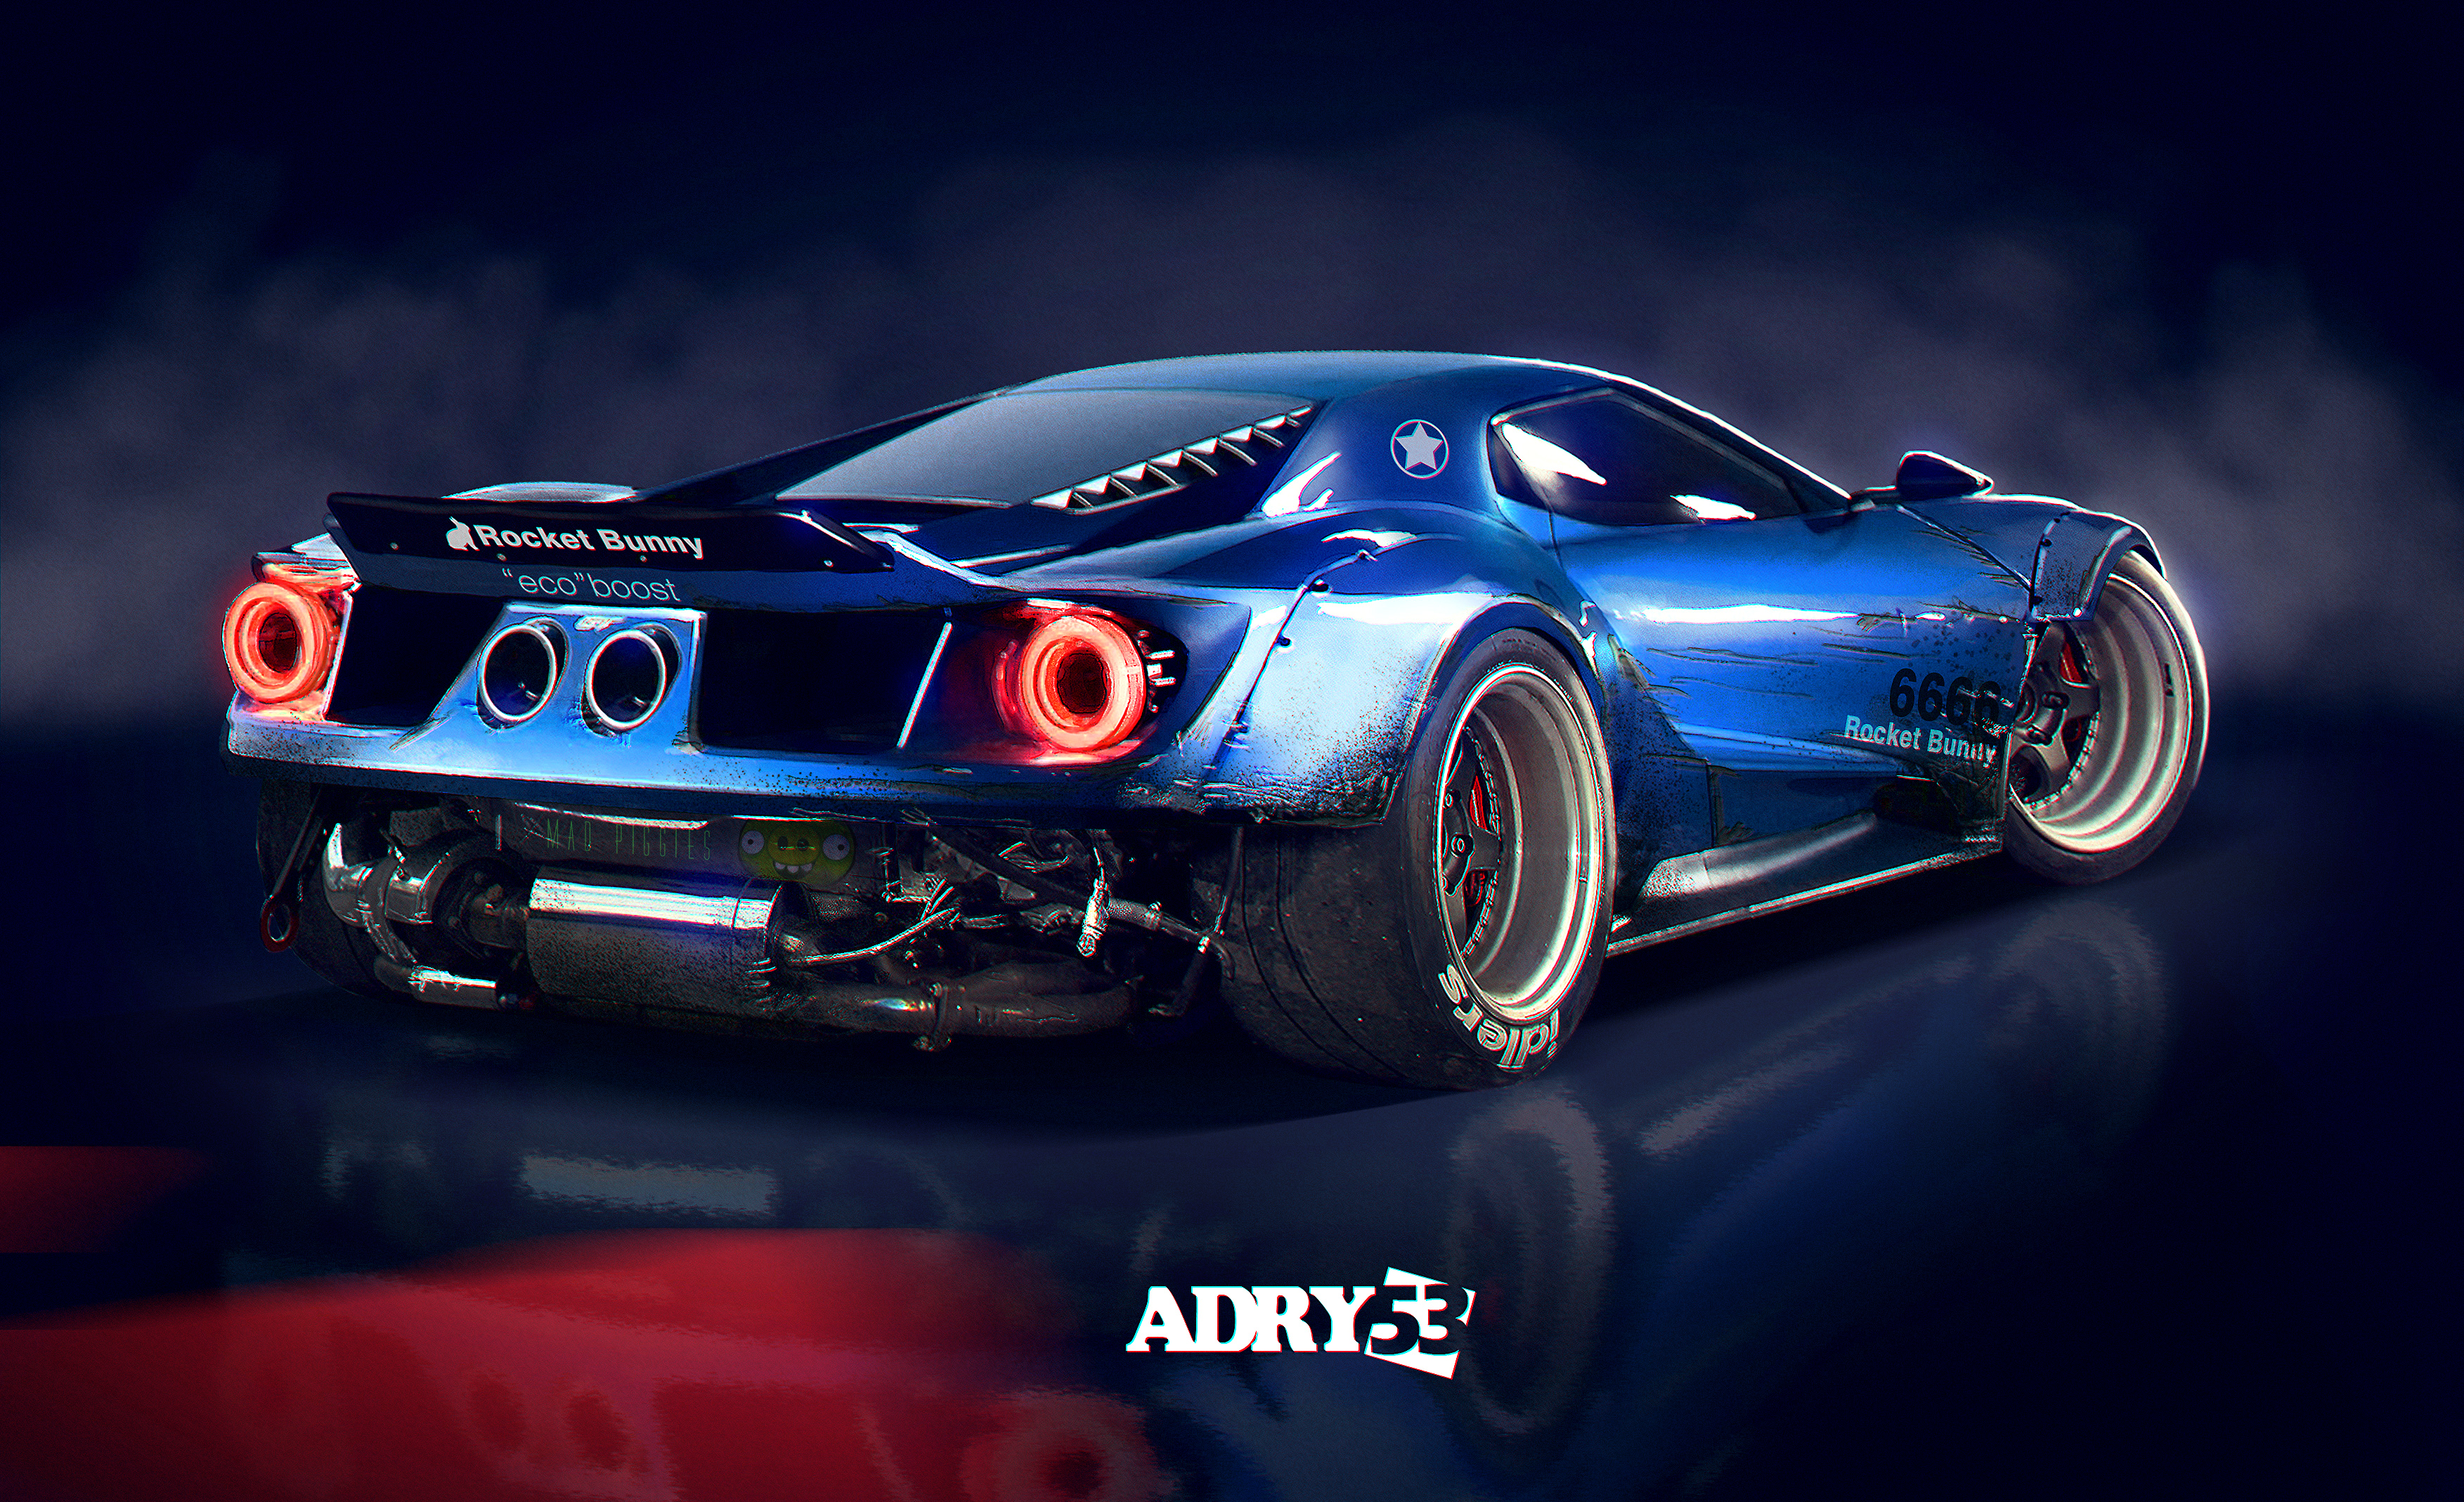 Evo 2017 Logo >> Ford GT Rocket Bunny by Adry53 on DeviantArt